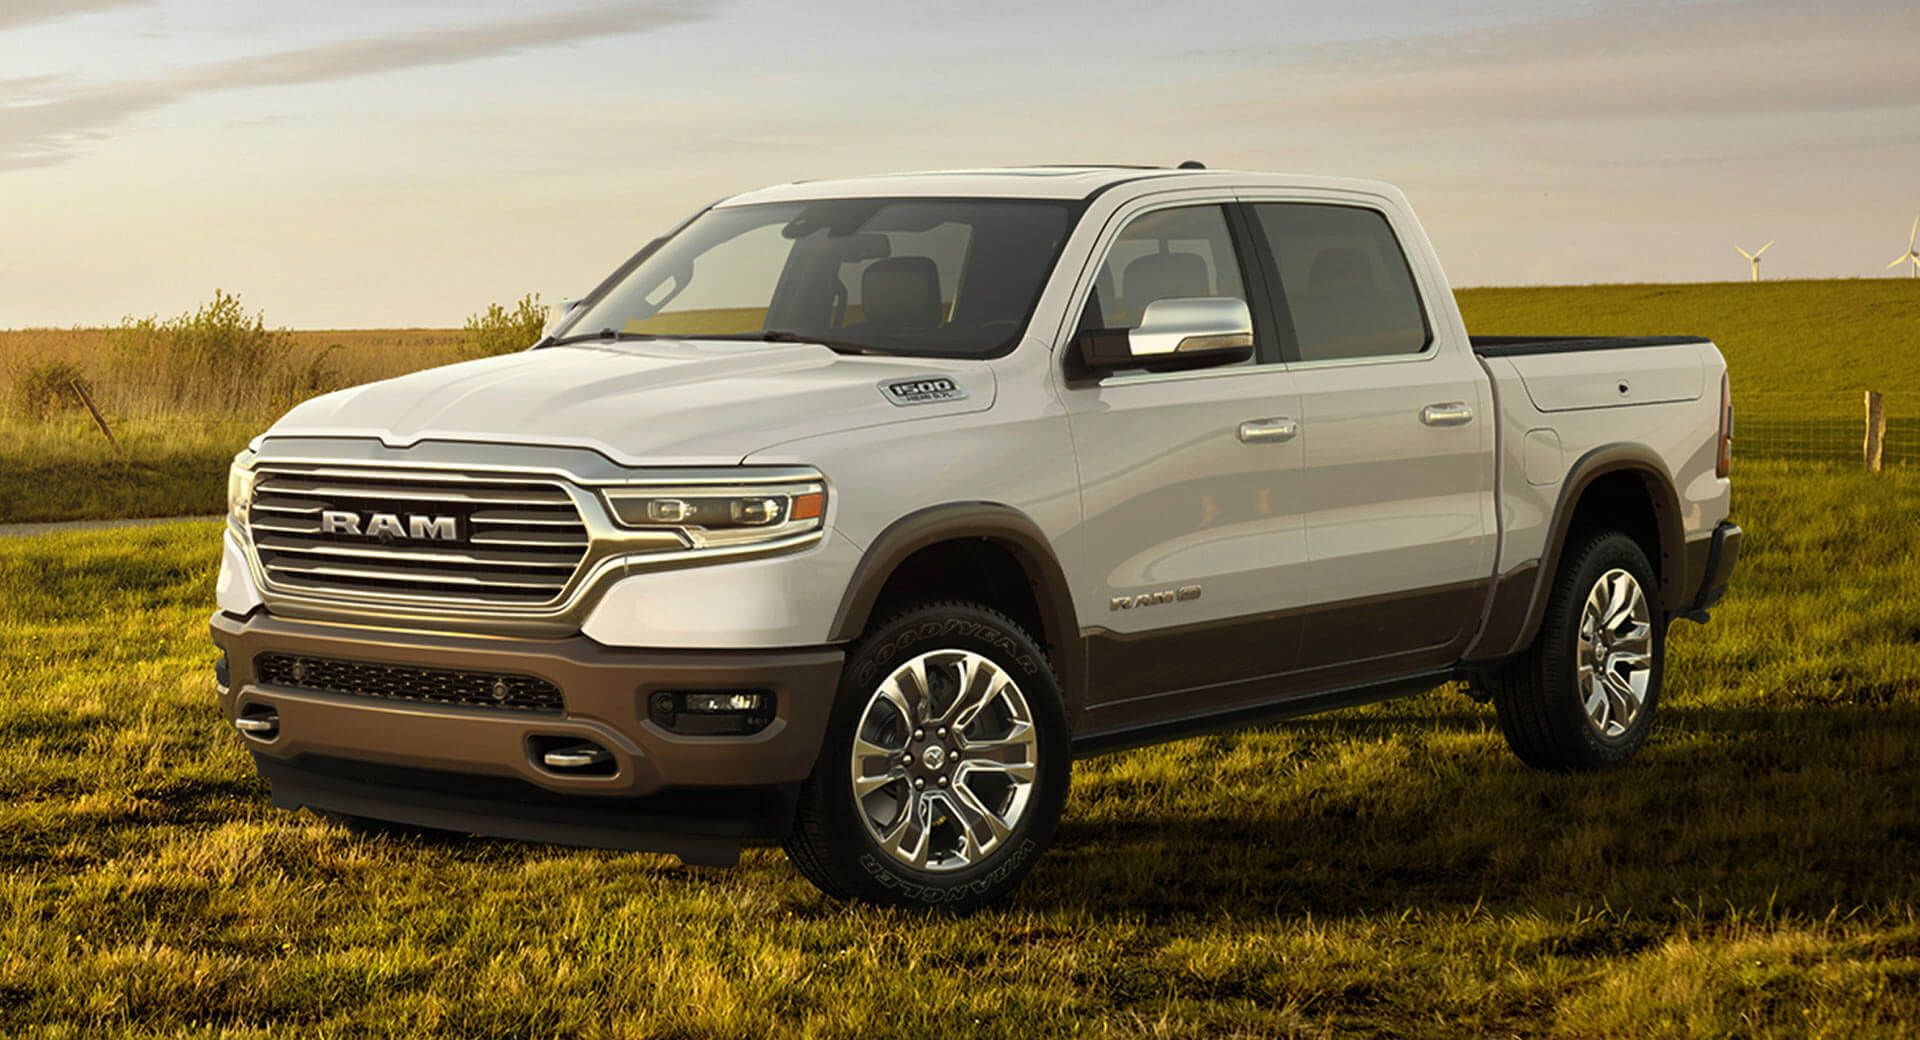 2019 Ram 1500 Laramie Longhorn Wants To Be The S Class Of Pickups Carscoops Dodge Ram Dodge Ram Diesel Dodge Ram 2500